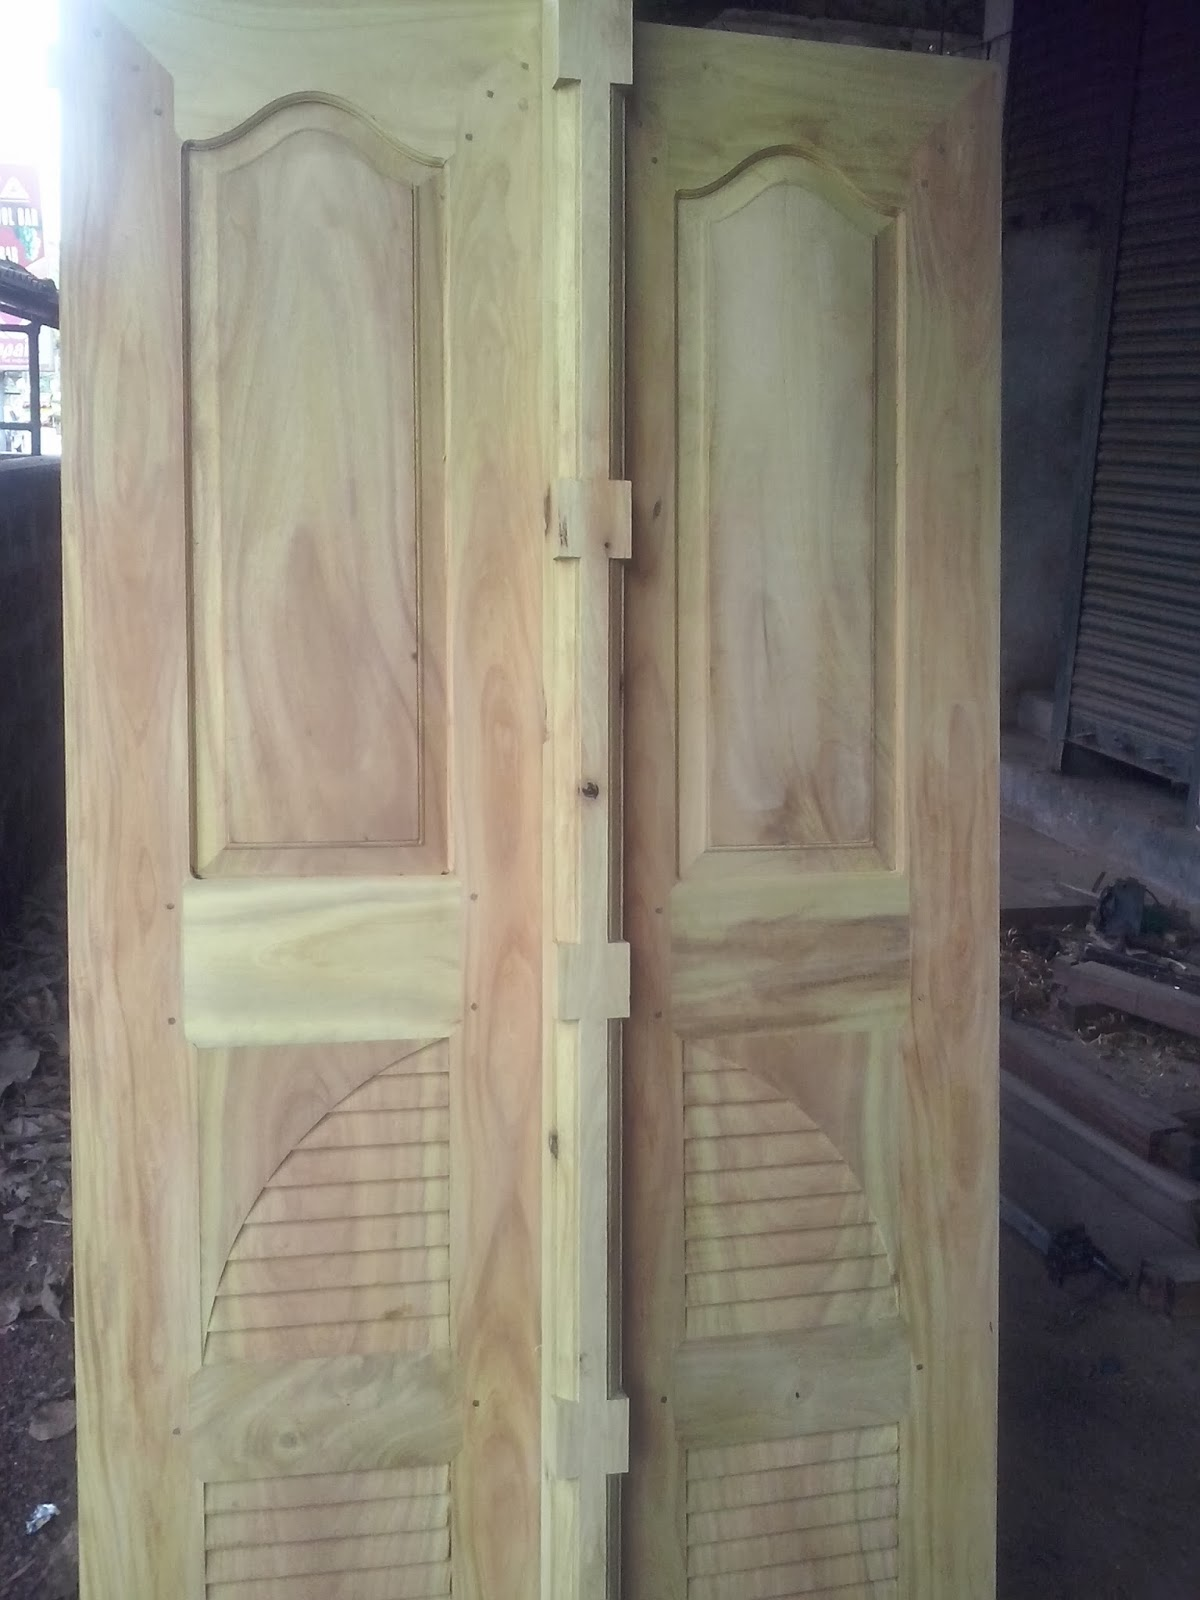 Bavas wood works main entrance wooden double door designs for Entry double door designs